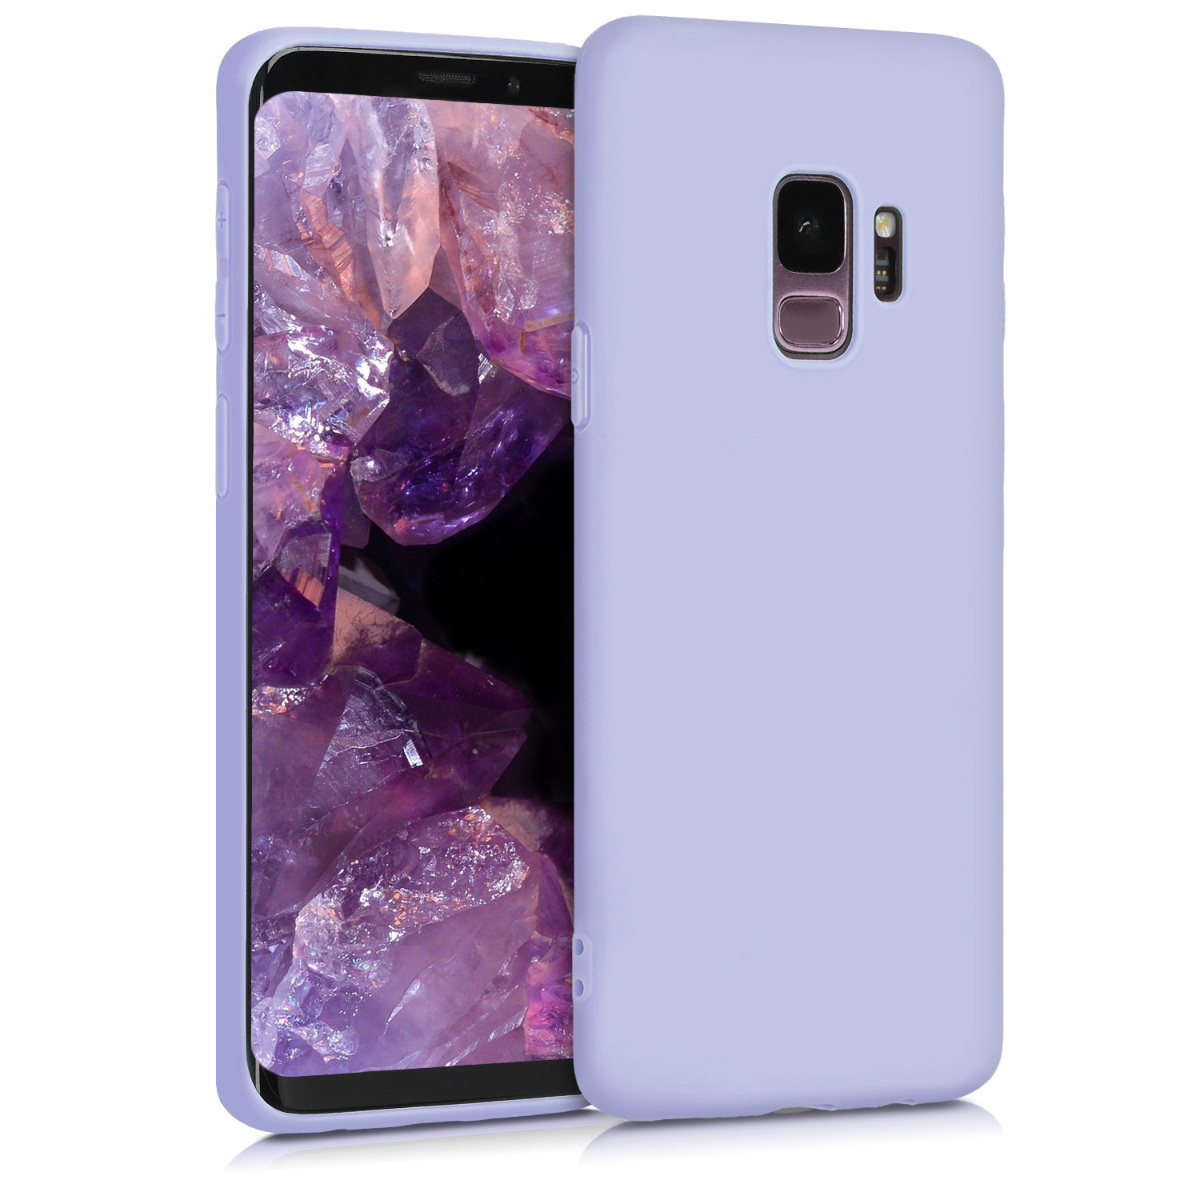 TPU Silikonové pouzdro pro Samsung Galaxy S9 - Soft Flexible Protective Phone Cover - Light Lavender